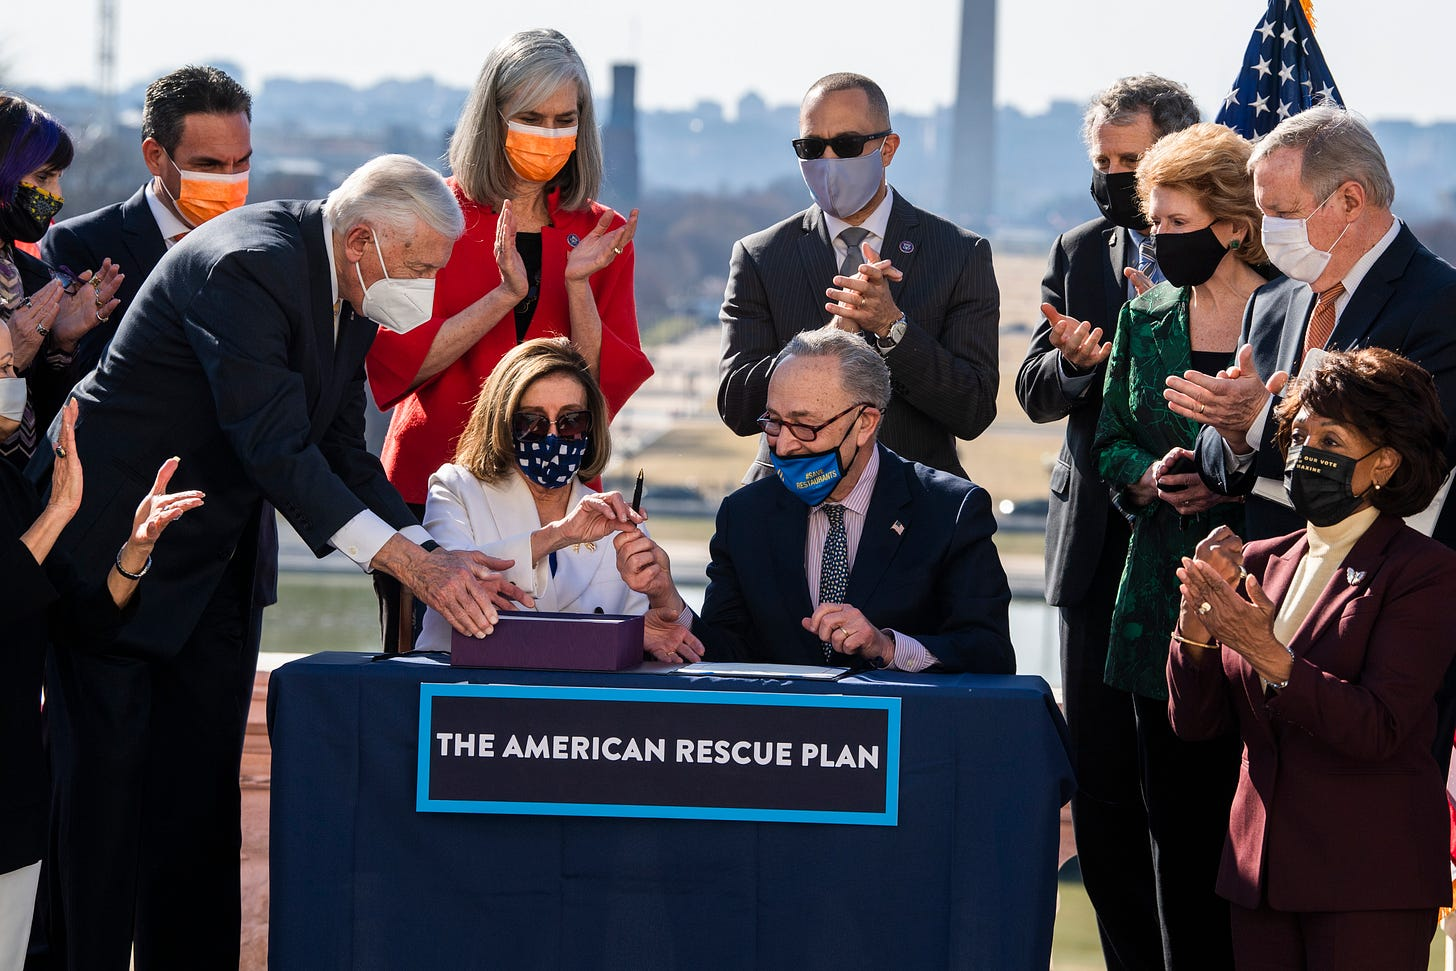 From left, House Majority Leader Steny Hoyer, D-Md., Speaker of the House Nancy Pelosi, D-Calif., and Senate Majority Leader Chuck Schumer, D-N.Y., sign the American Rescue Plan Act at a bill enrollment ceremony on the West Front of the Capitol after the House passed the $1.9 trillion covid-19 relief package, on Wednesday, March 10, 2021. (Photo By Tom Williams/CQ-Roll Call, Inc via Getty Images)